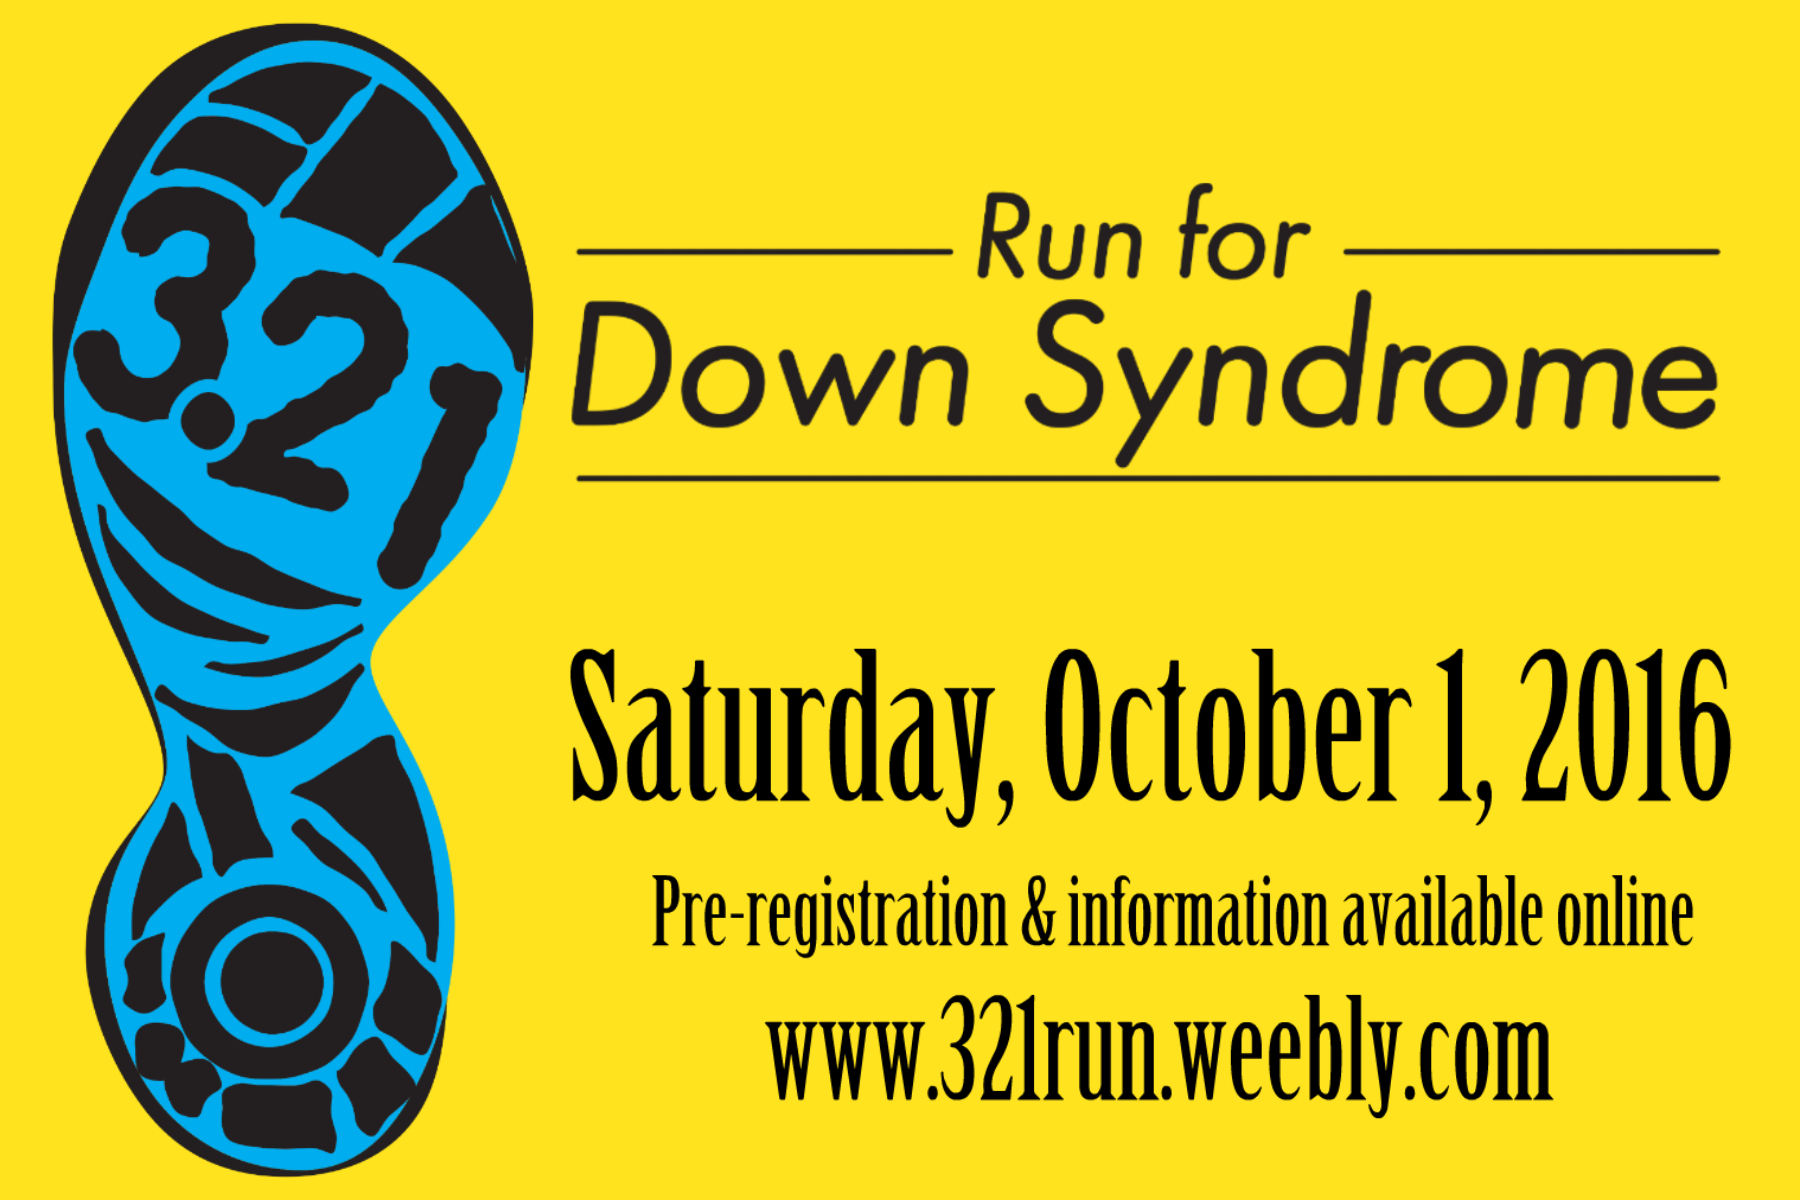 Run for Down Syndrome image and link